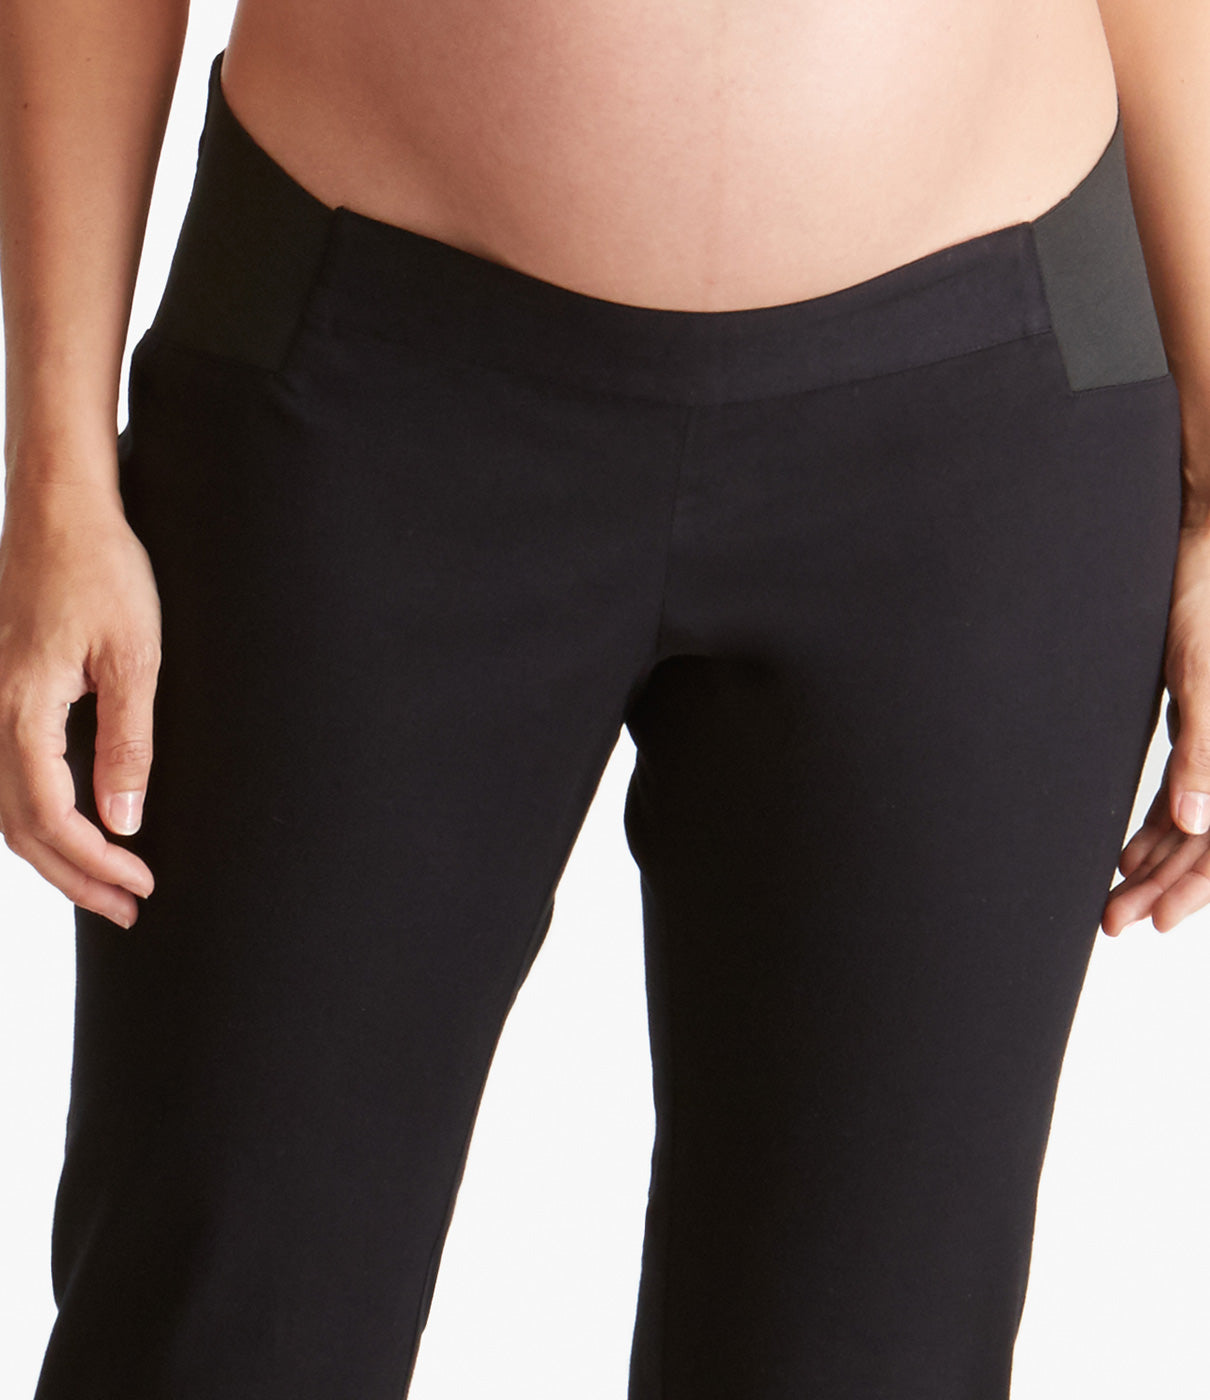 CRAZY COMFORTABLESoft, stretchy cotton blend maternity pants that sits comfortably under the belly.